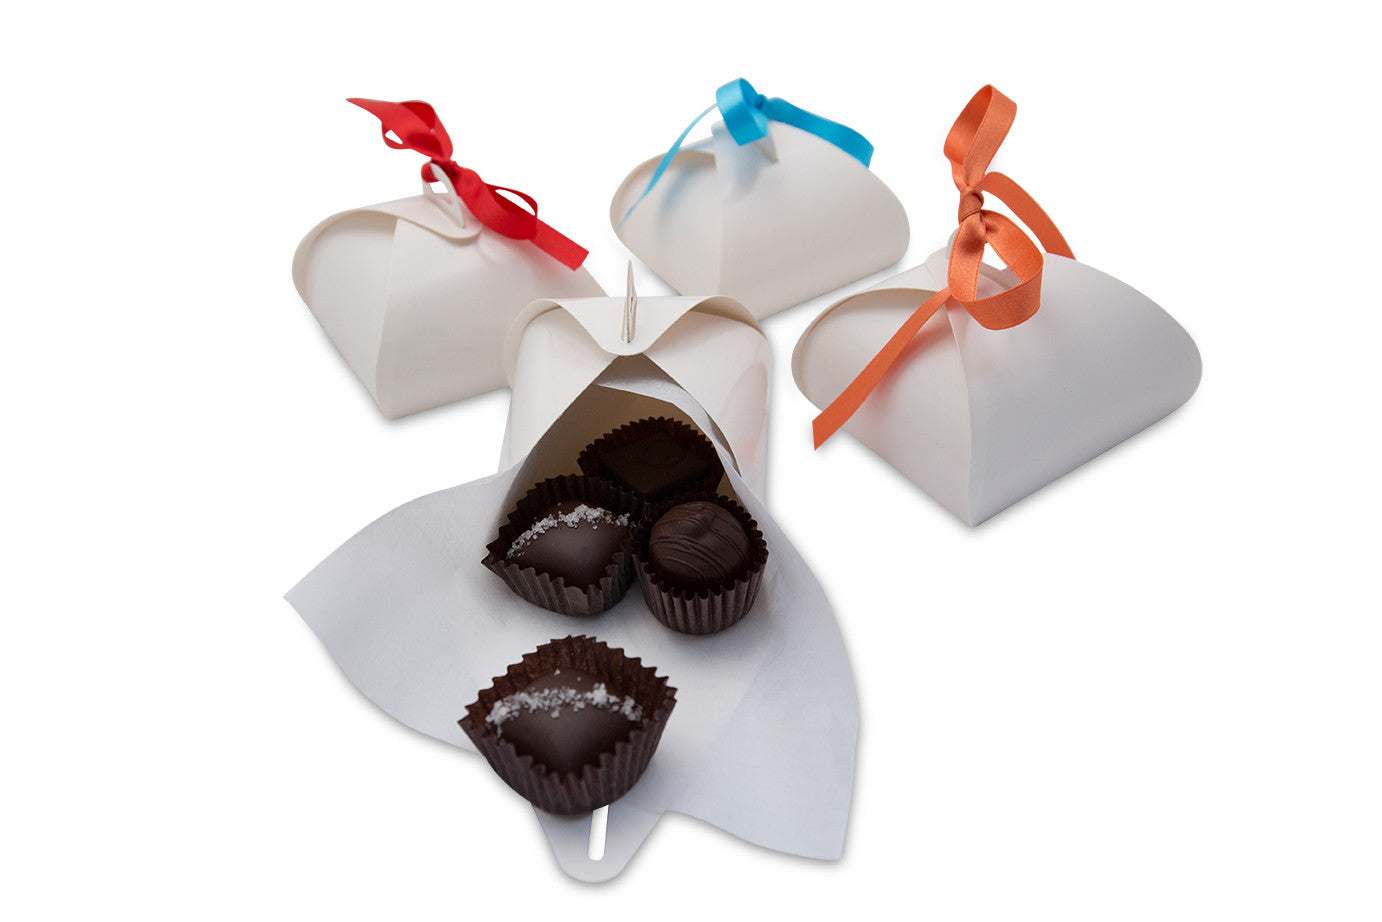 Chocolate Selections for Parties: Chocolate Truffle Favor Boxes ...